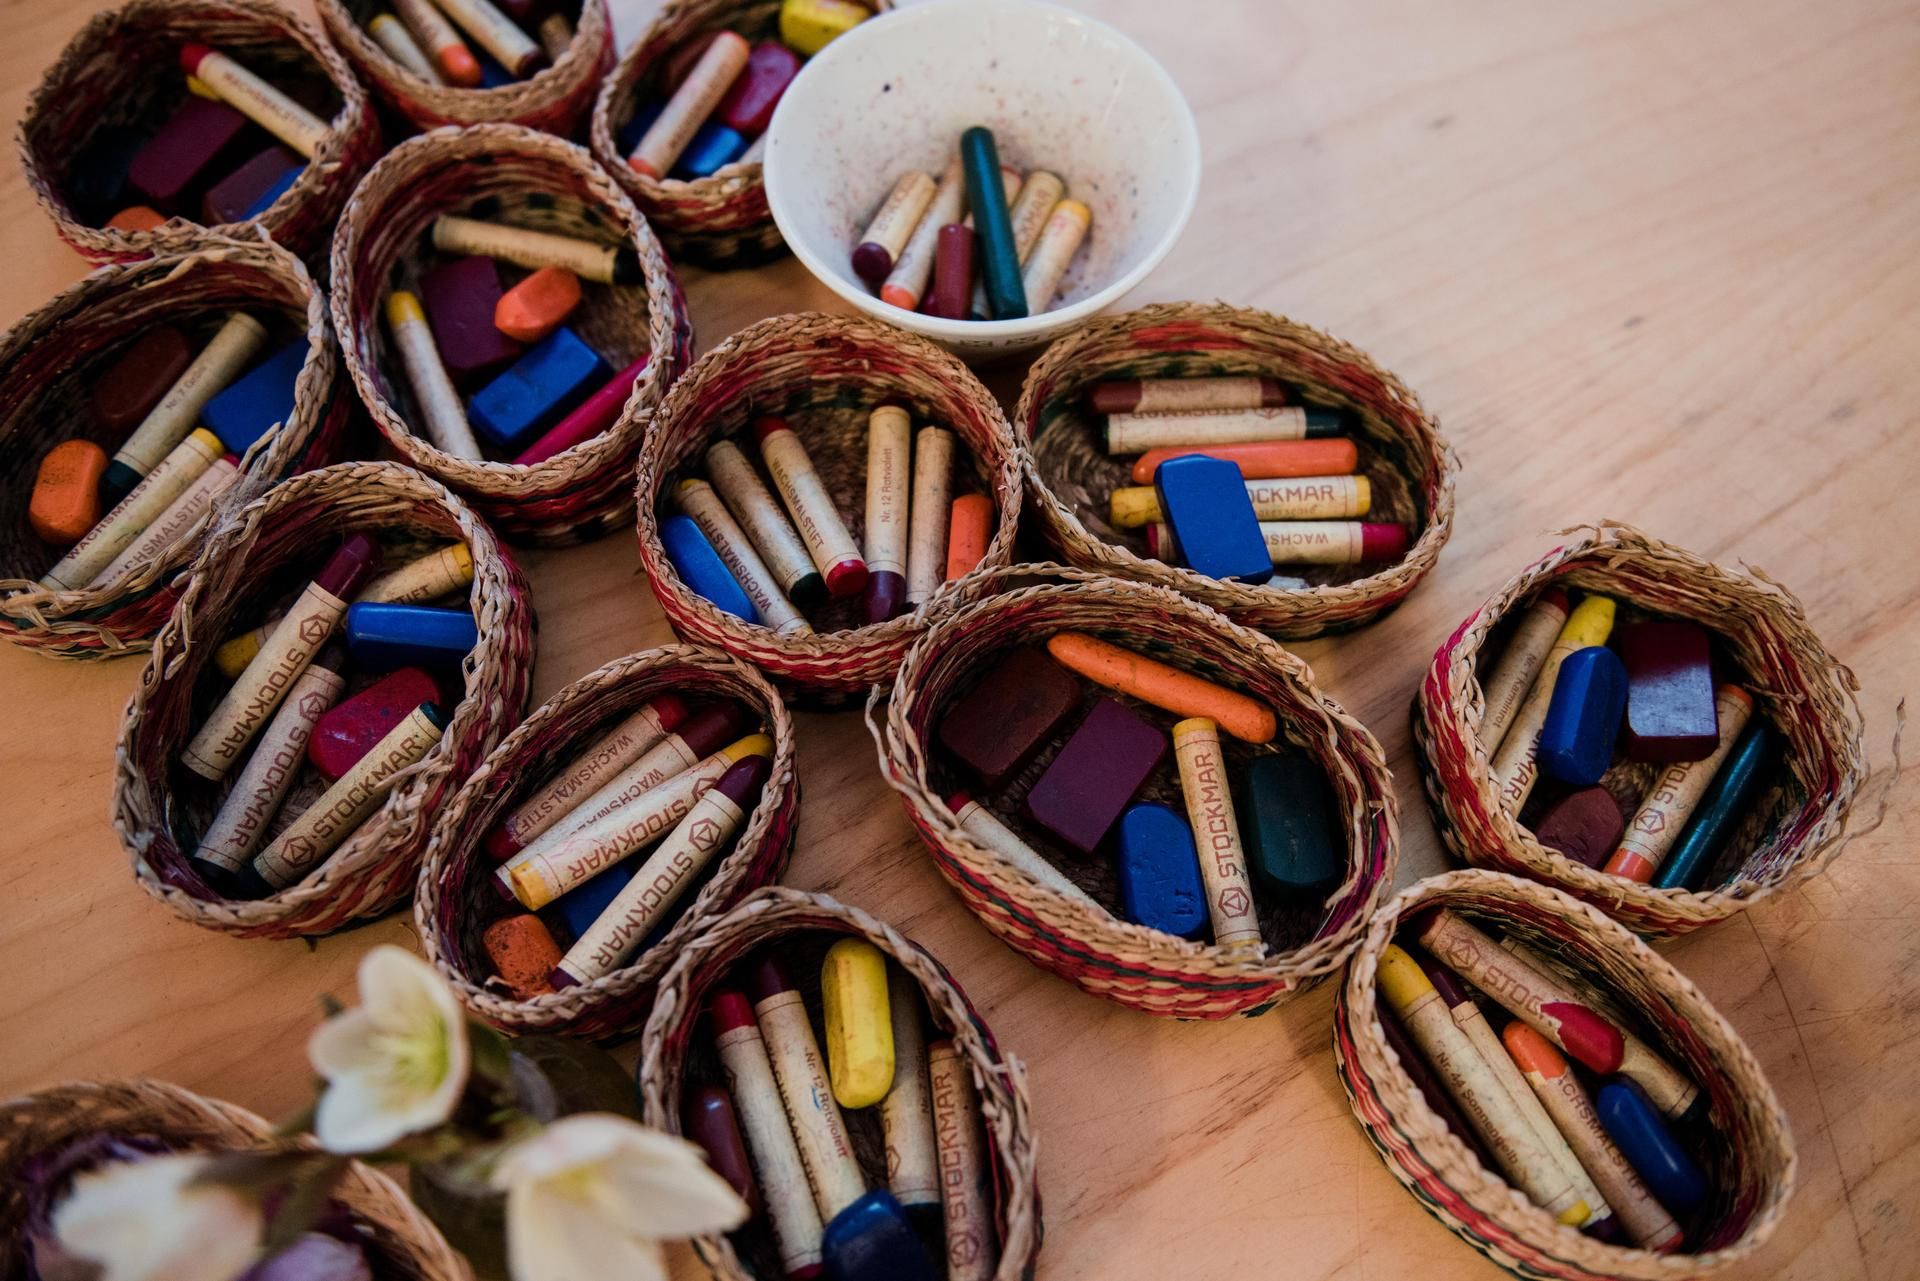 Crayons in baskets